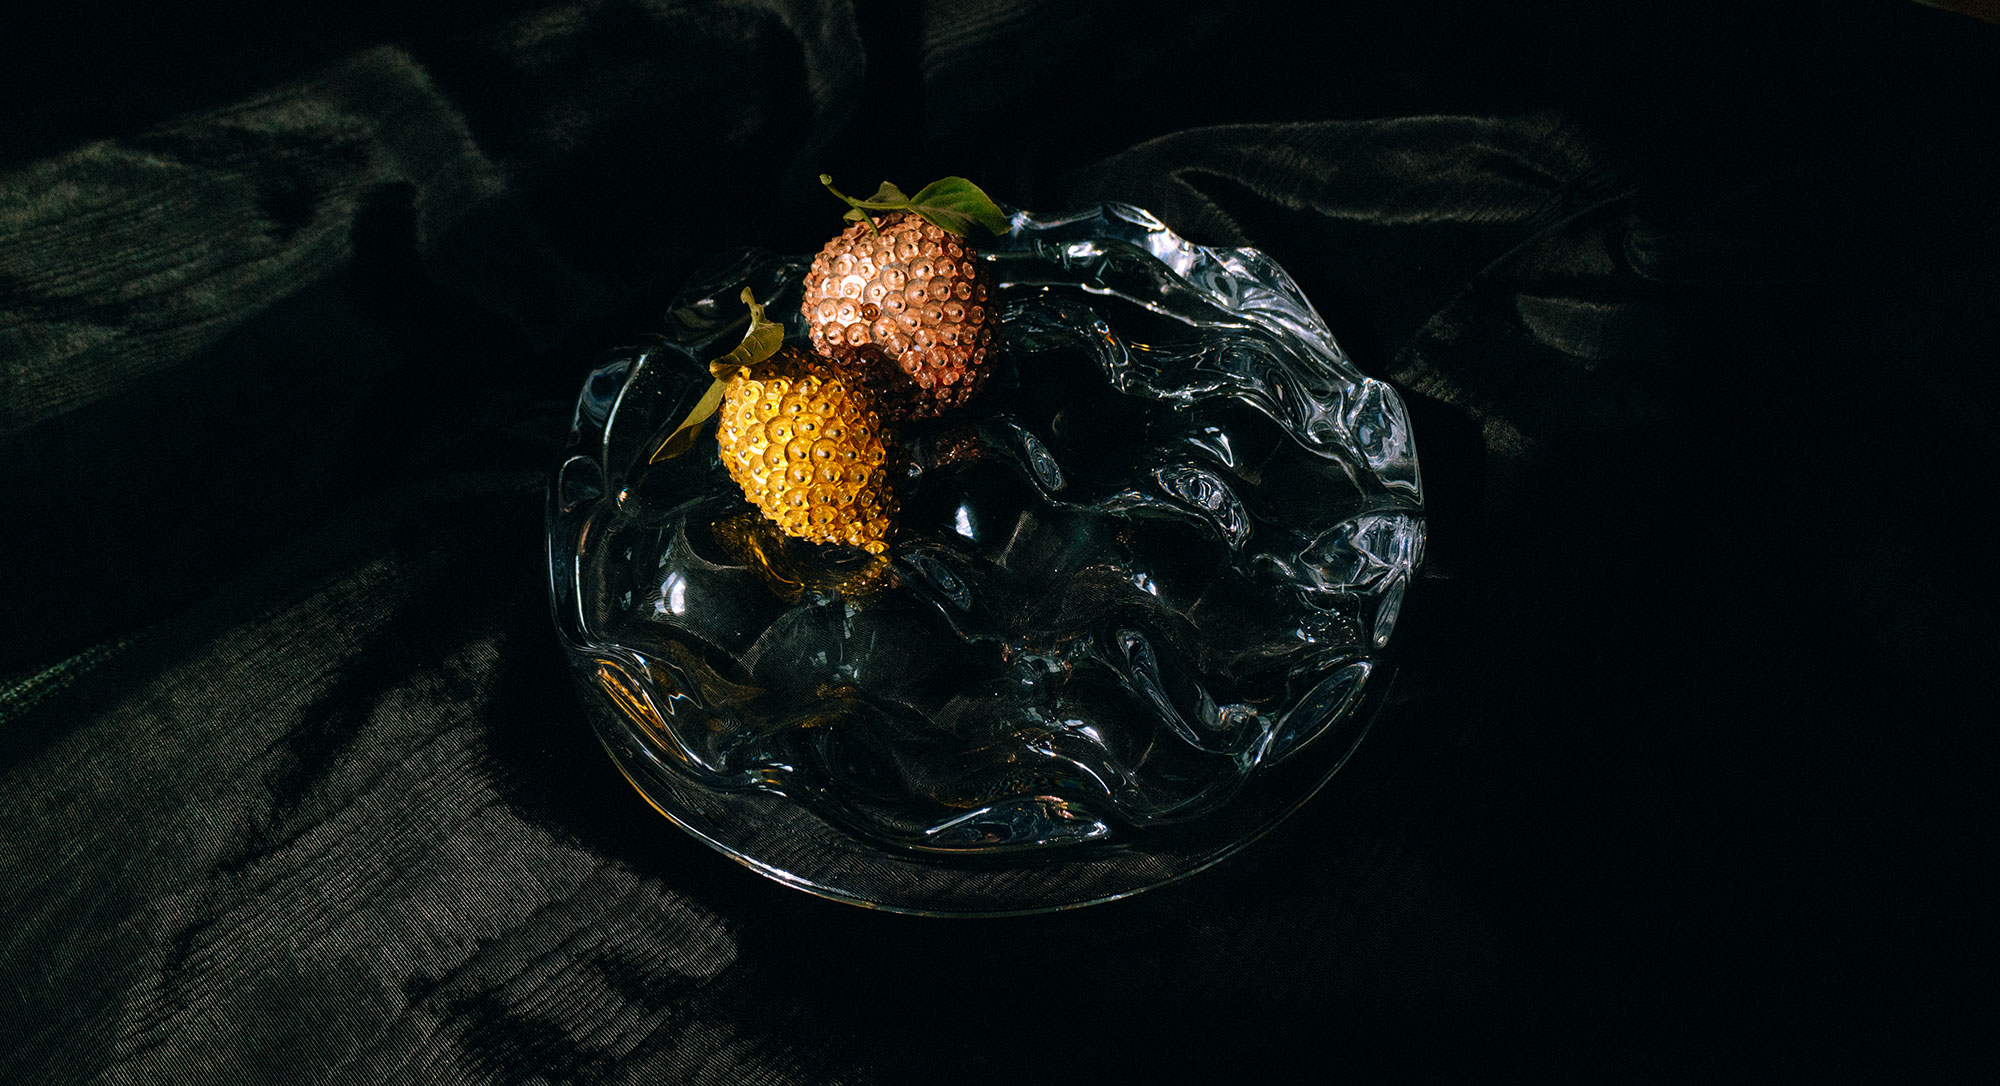 Marias Moellenbach Clear Fruit Bowl / Interior & Lifestyle Favorite / iHeartAlice.com - Travel, Lifestyle, Fashionblog by Alice M. Huynh / German Blog